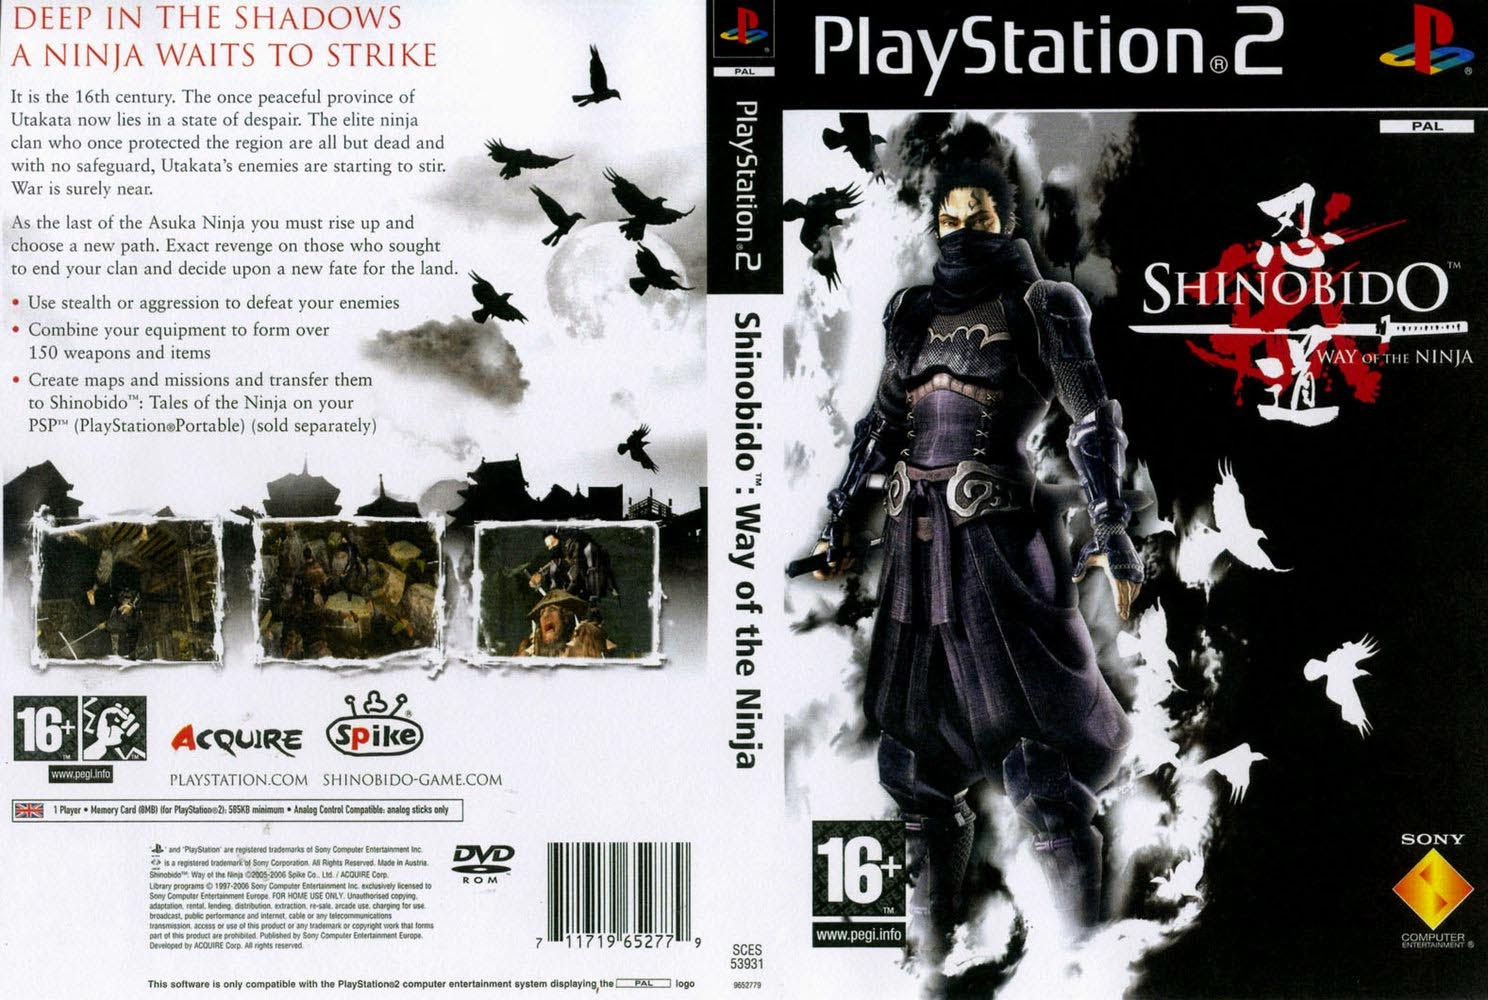 Shinobido way Of The ninja ps2 iso ita